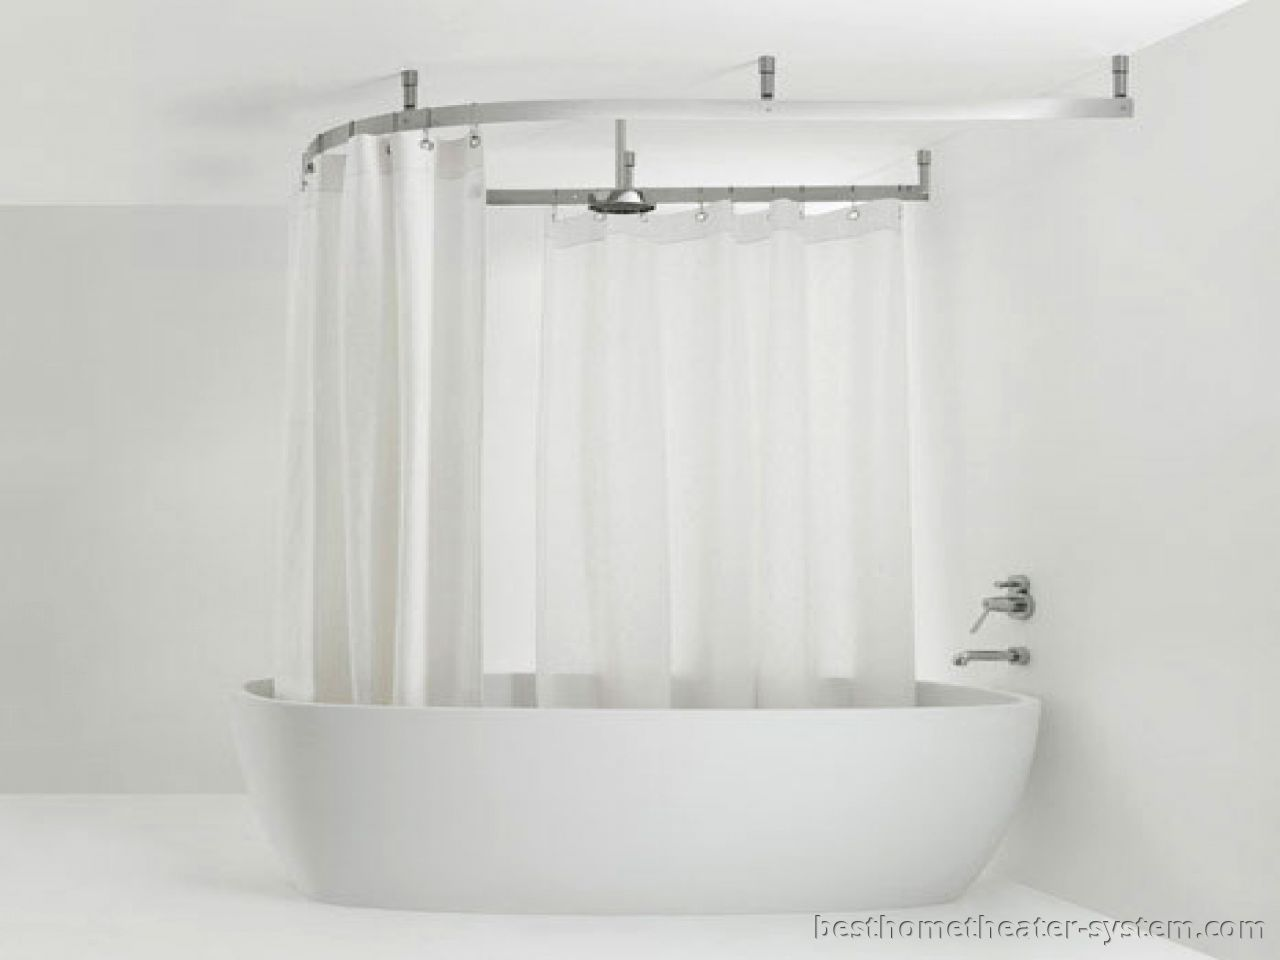 Ikea Shower Curtain for Best Your Bathroom Decoration: Ikea Shower Curtain | Shower Curtain Rod | Shower Curtain Ikea